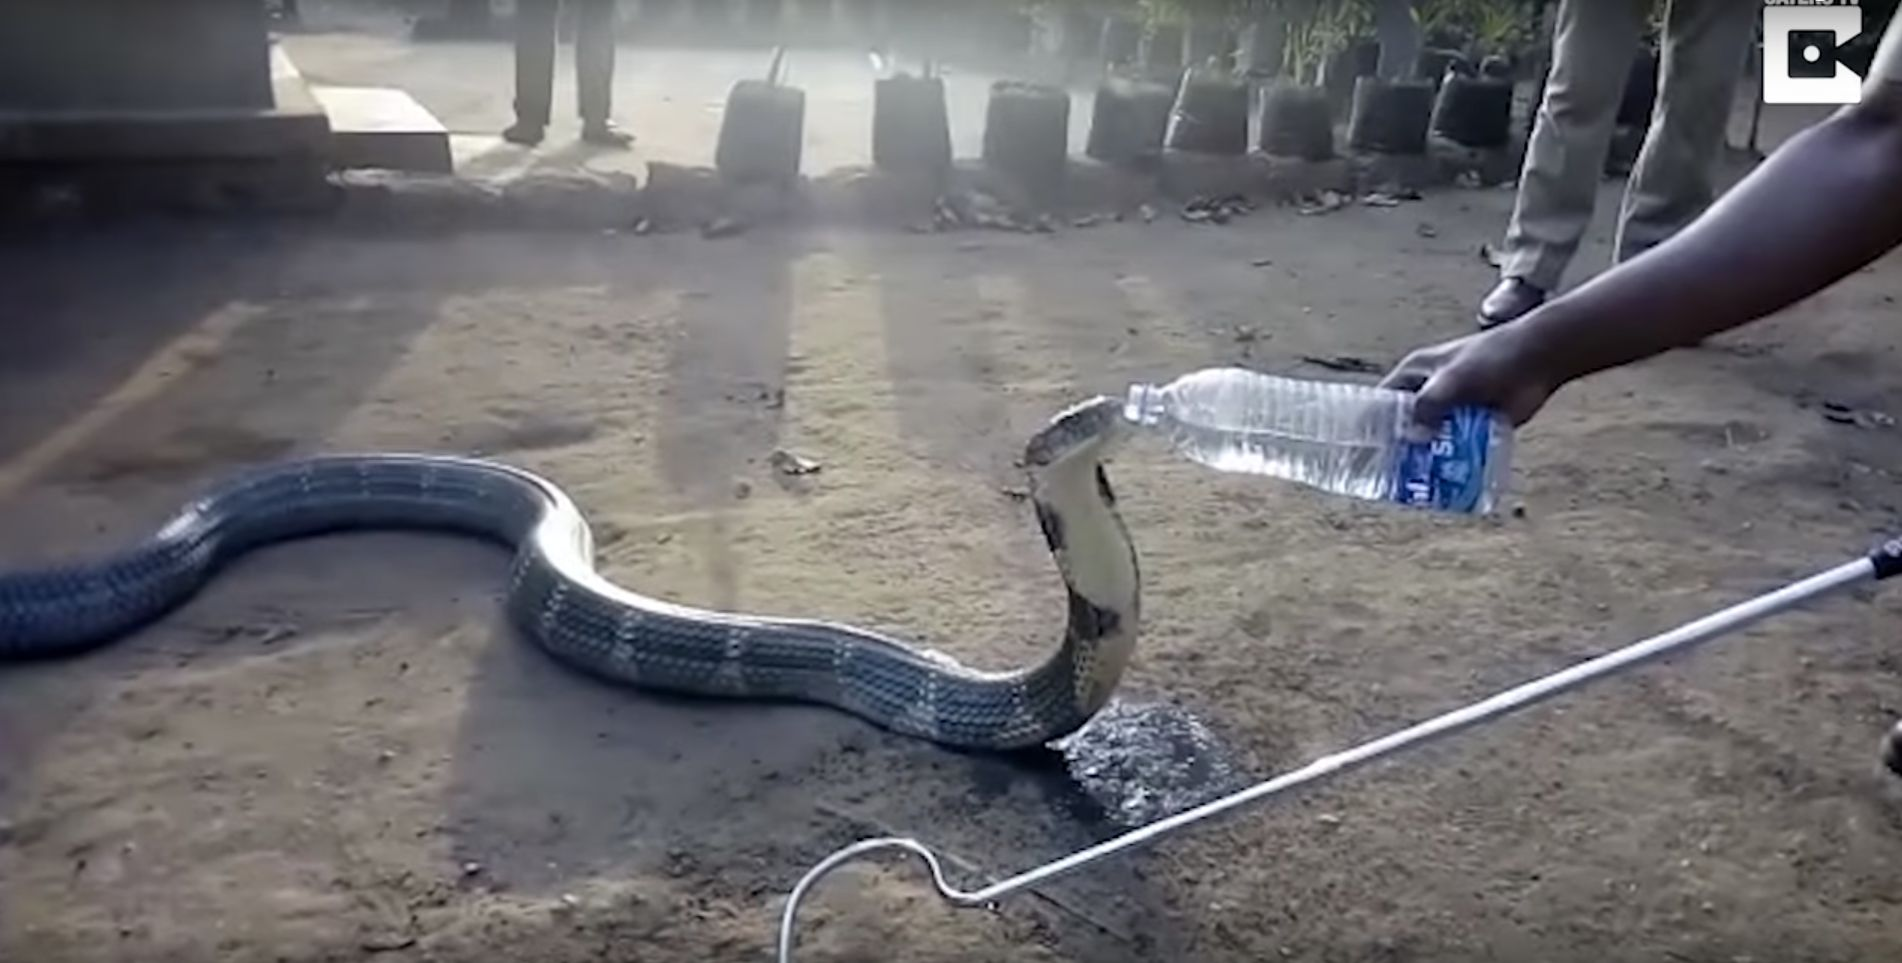 Video captured a king cobra appearing to drink from a water bottle amid extreme droughts in Southern India